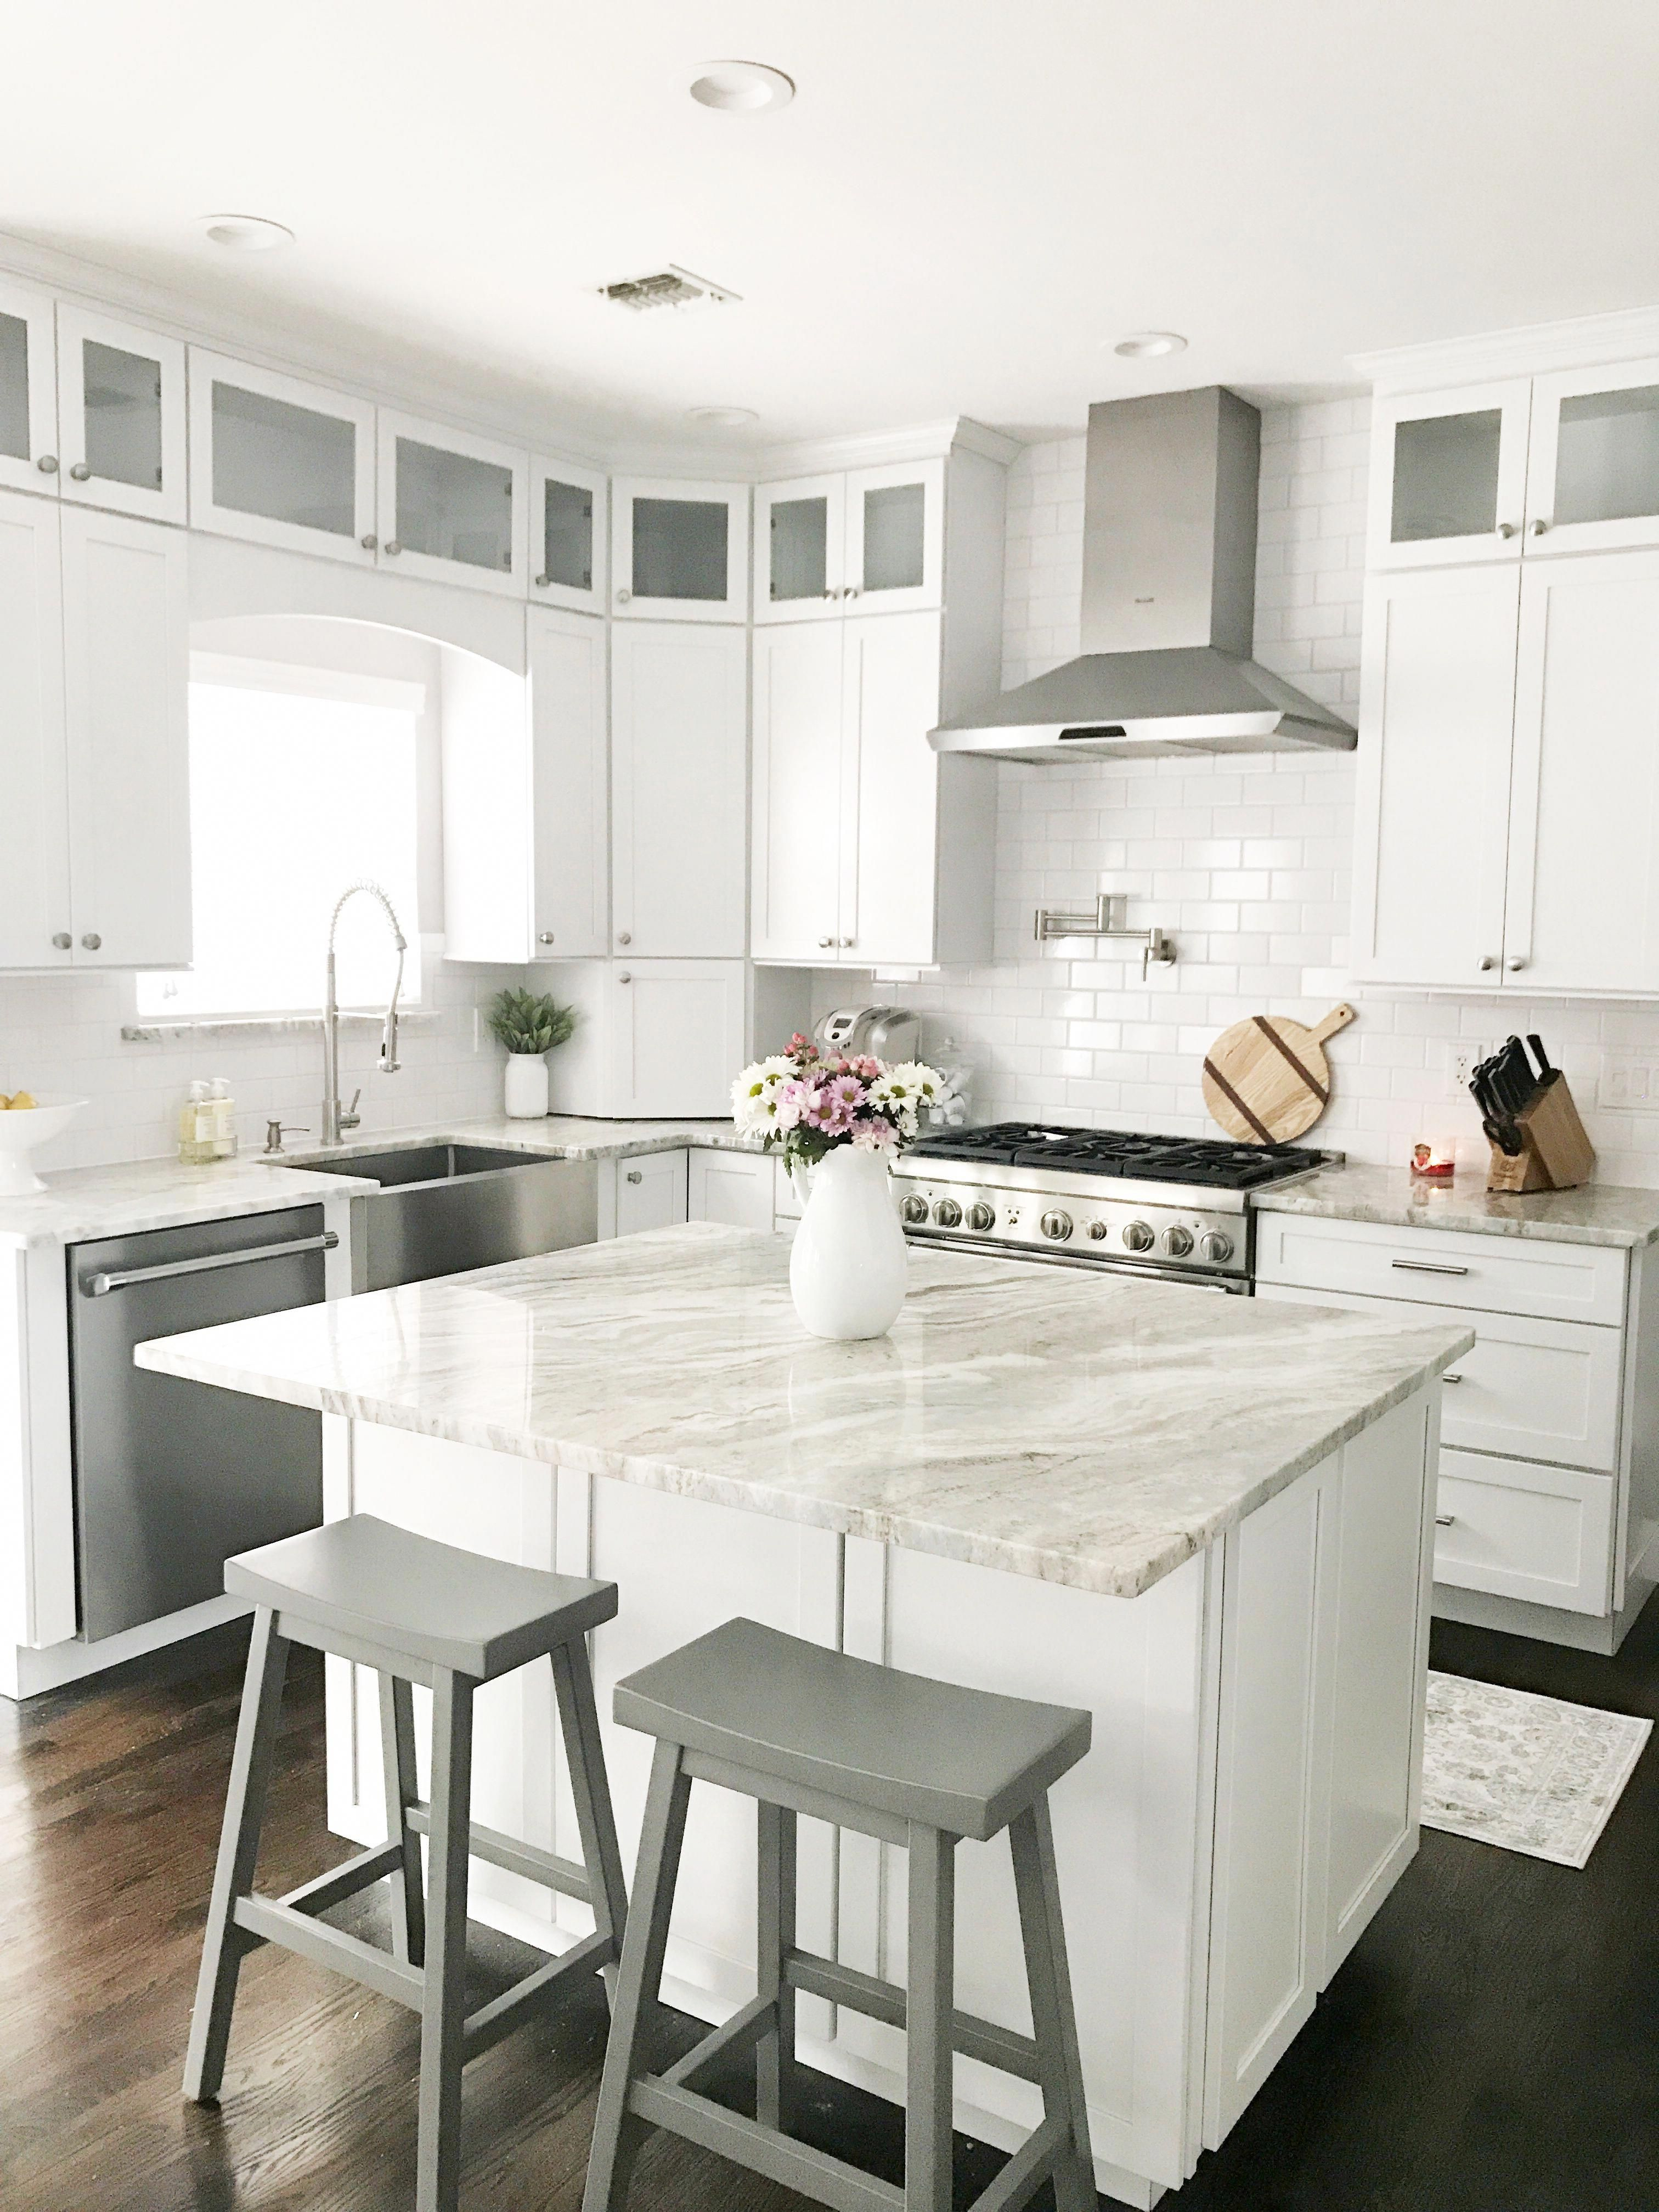 Looking For White Shaker Cabinet Kitchen Inspiration Click Here For An Updated Clean White Kitchen Luxury Kitchens Kitchen Design Small Kitchen Remodel Small